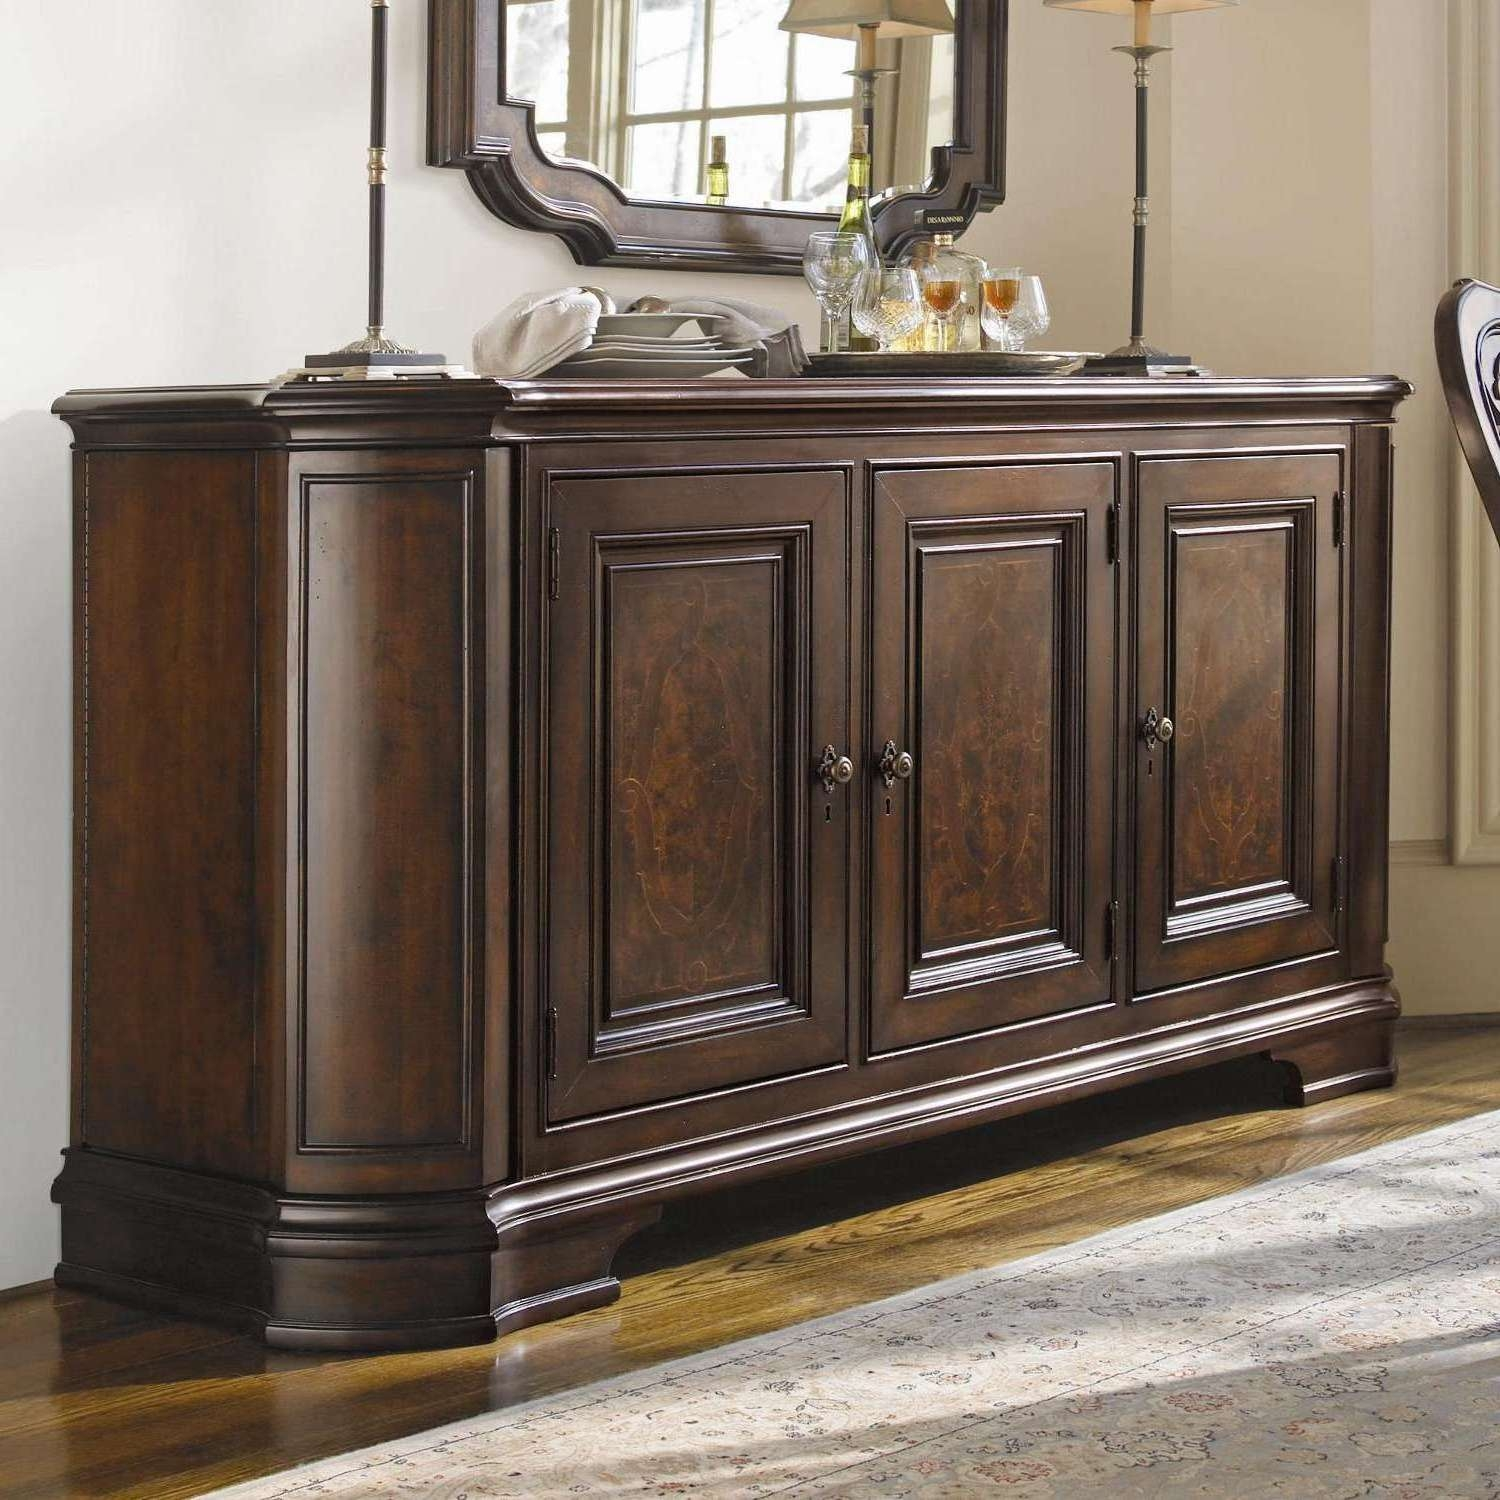 20 Inspirations Of Dining Room Servers And Sideboards Pertaining To Buffet Sideboards Servers (View 16 of 20)